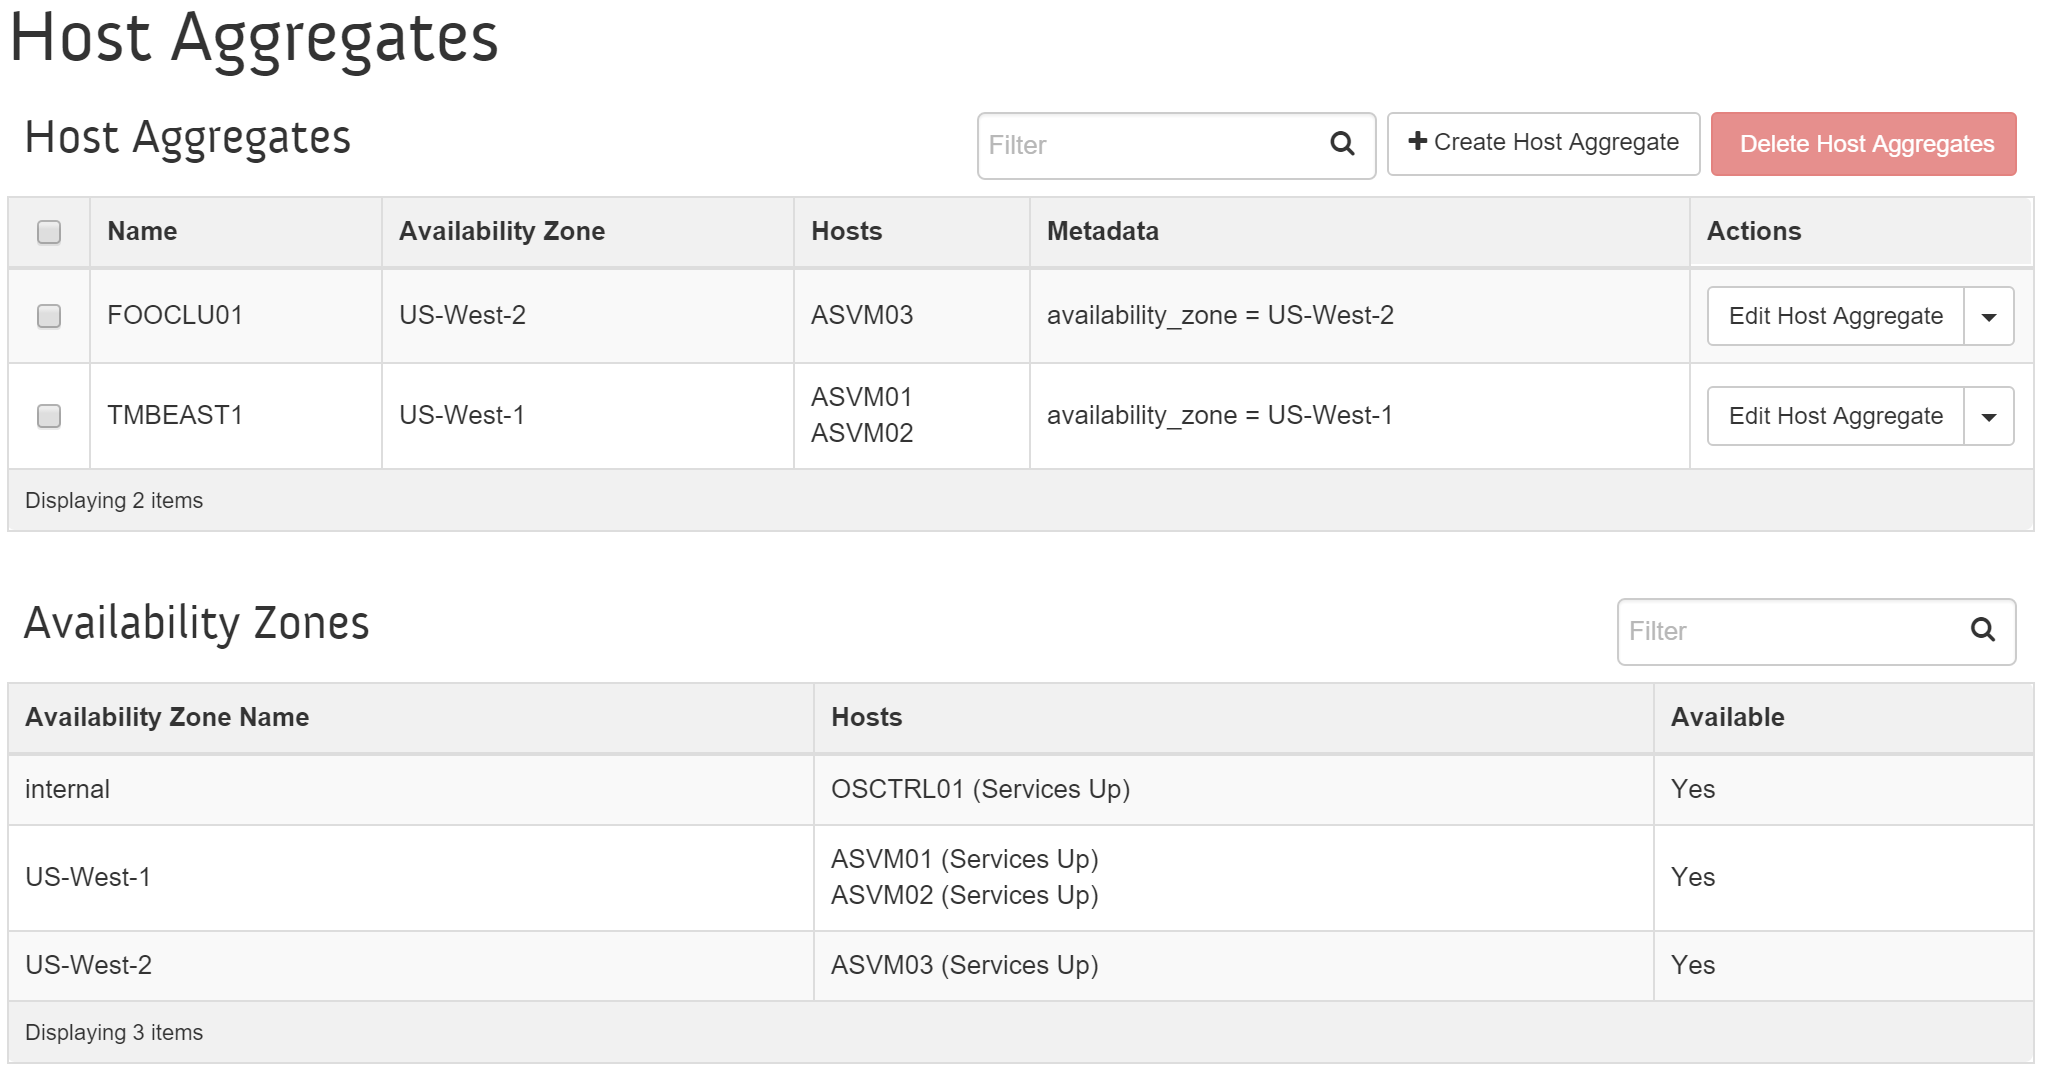 OpenStack Host Aggregates and Availability Zones